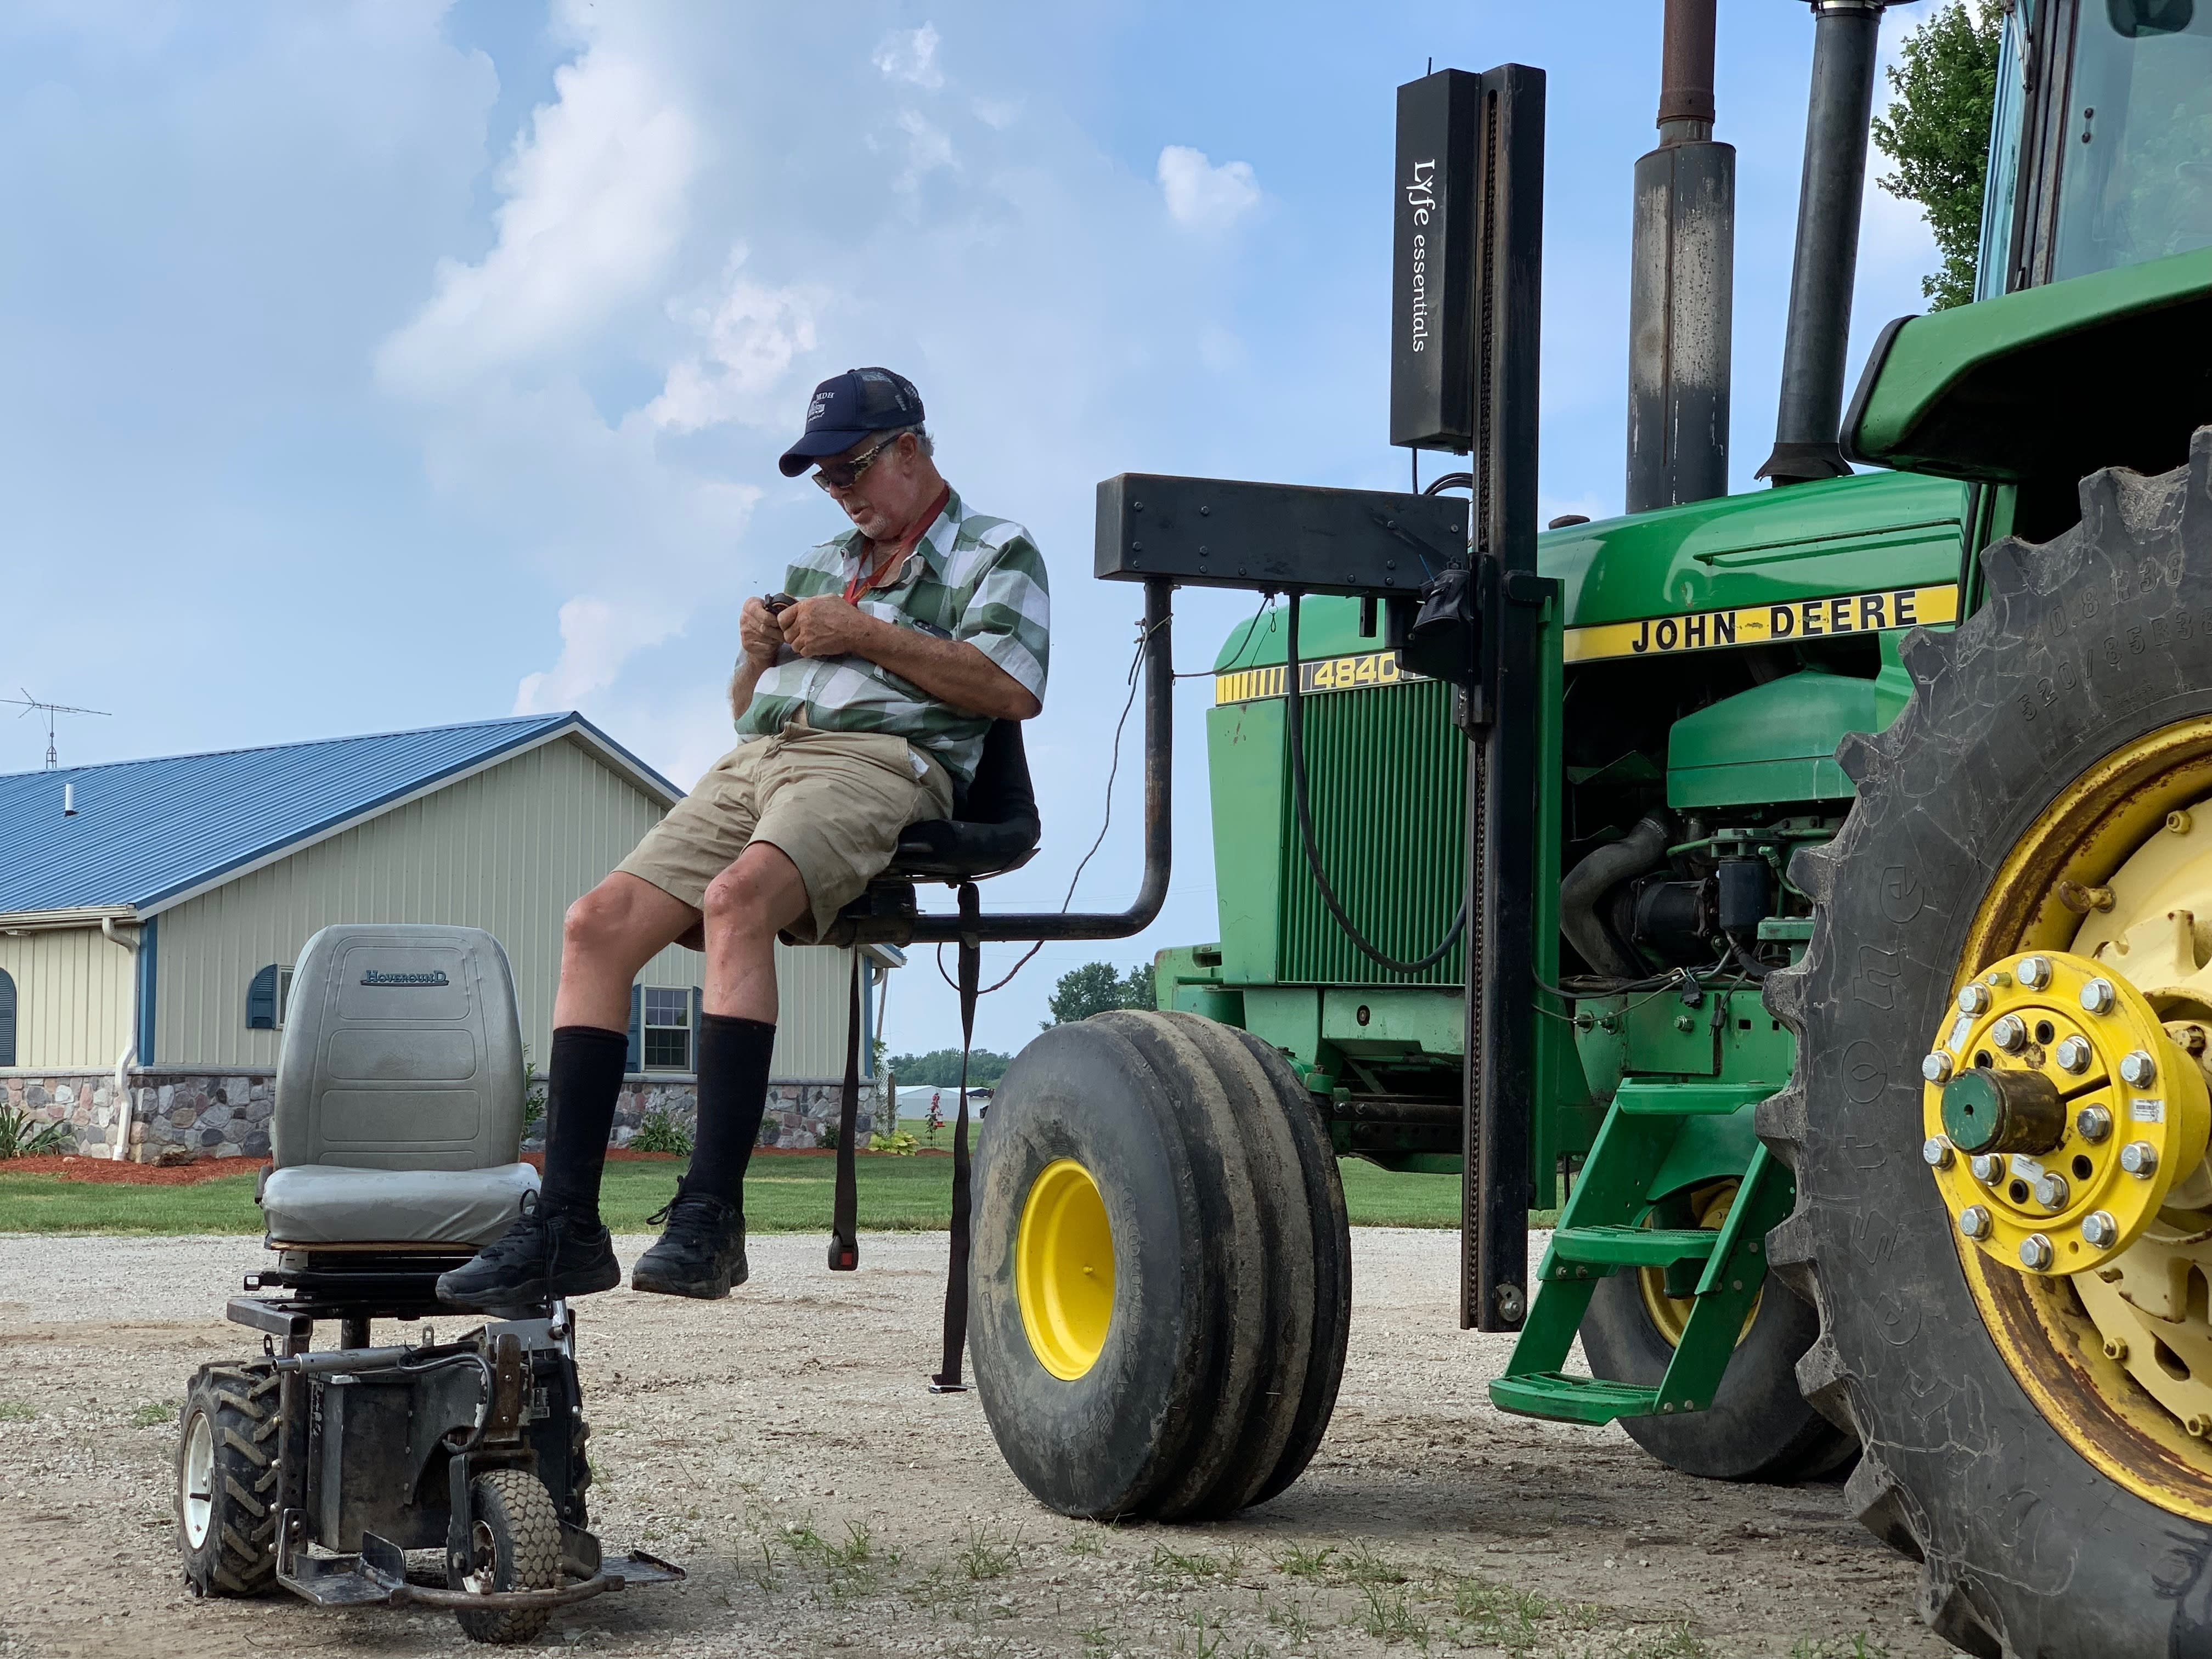 In this July 10, 2019, photo, farmer Mark Hosier, 58, uses a lift to get into a tractor on his farm in Alexandria, Ind. Hosier was injured in 2006, when a 2000-pound bale of hay fell on him while he was working. Assistive technology, help from seasonal hires and family members, and a general improvement in the health of U.S. seniors in recent decades have helped farmers remain productive and stay on the job well into their 60s, 70s and beyond. (Andrew Soregel via AP)